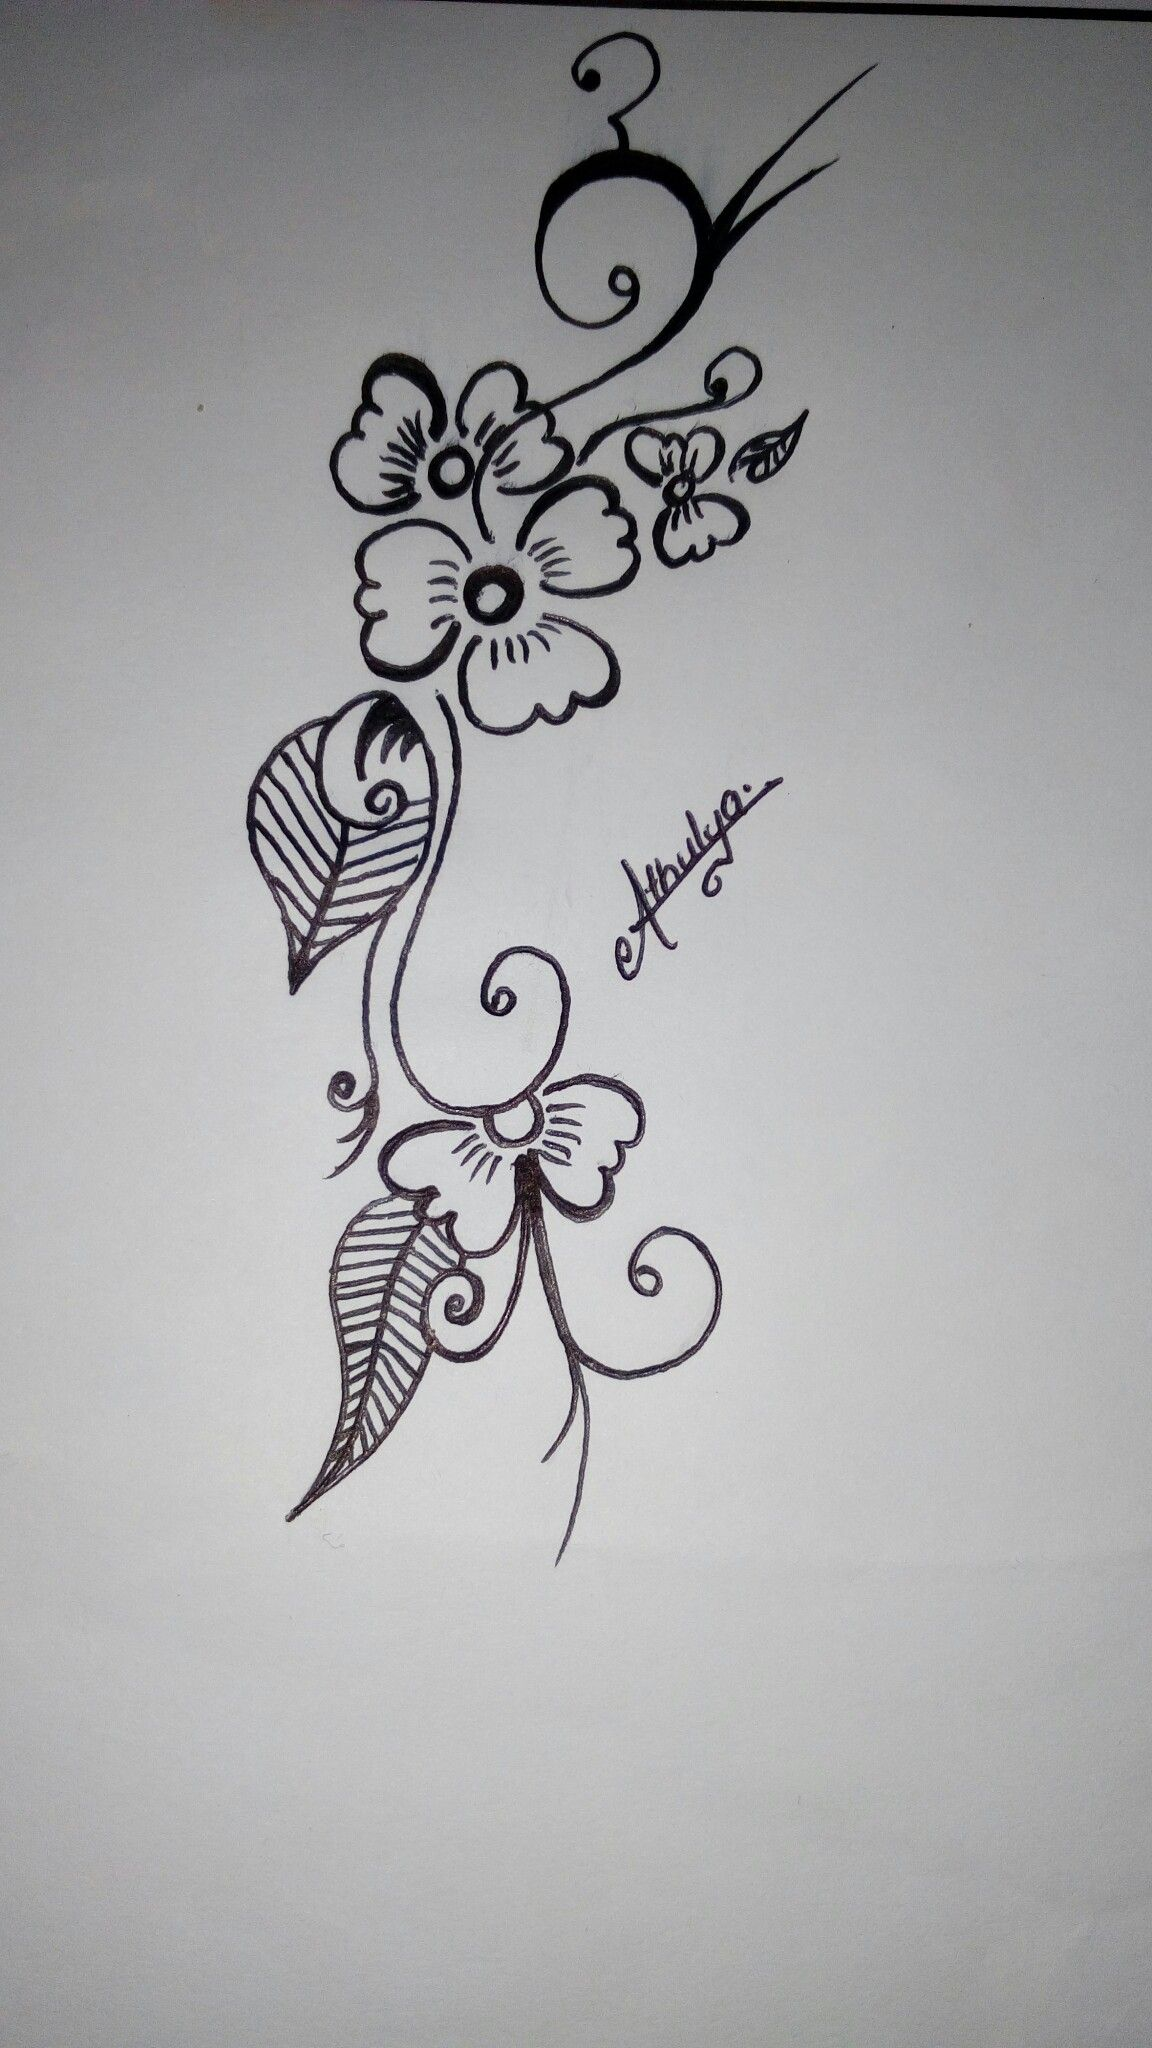 Simple and easy drawing of flower and leaves in black and